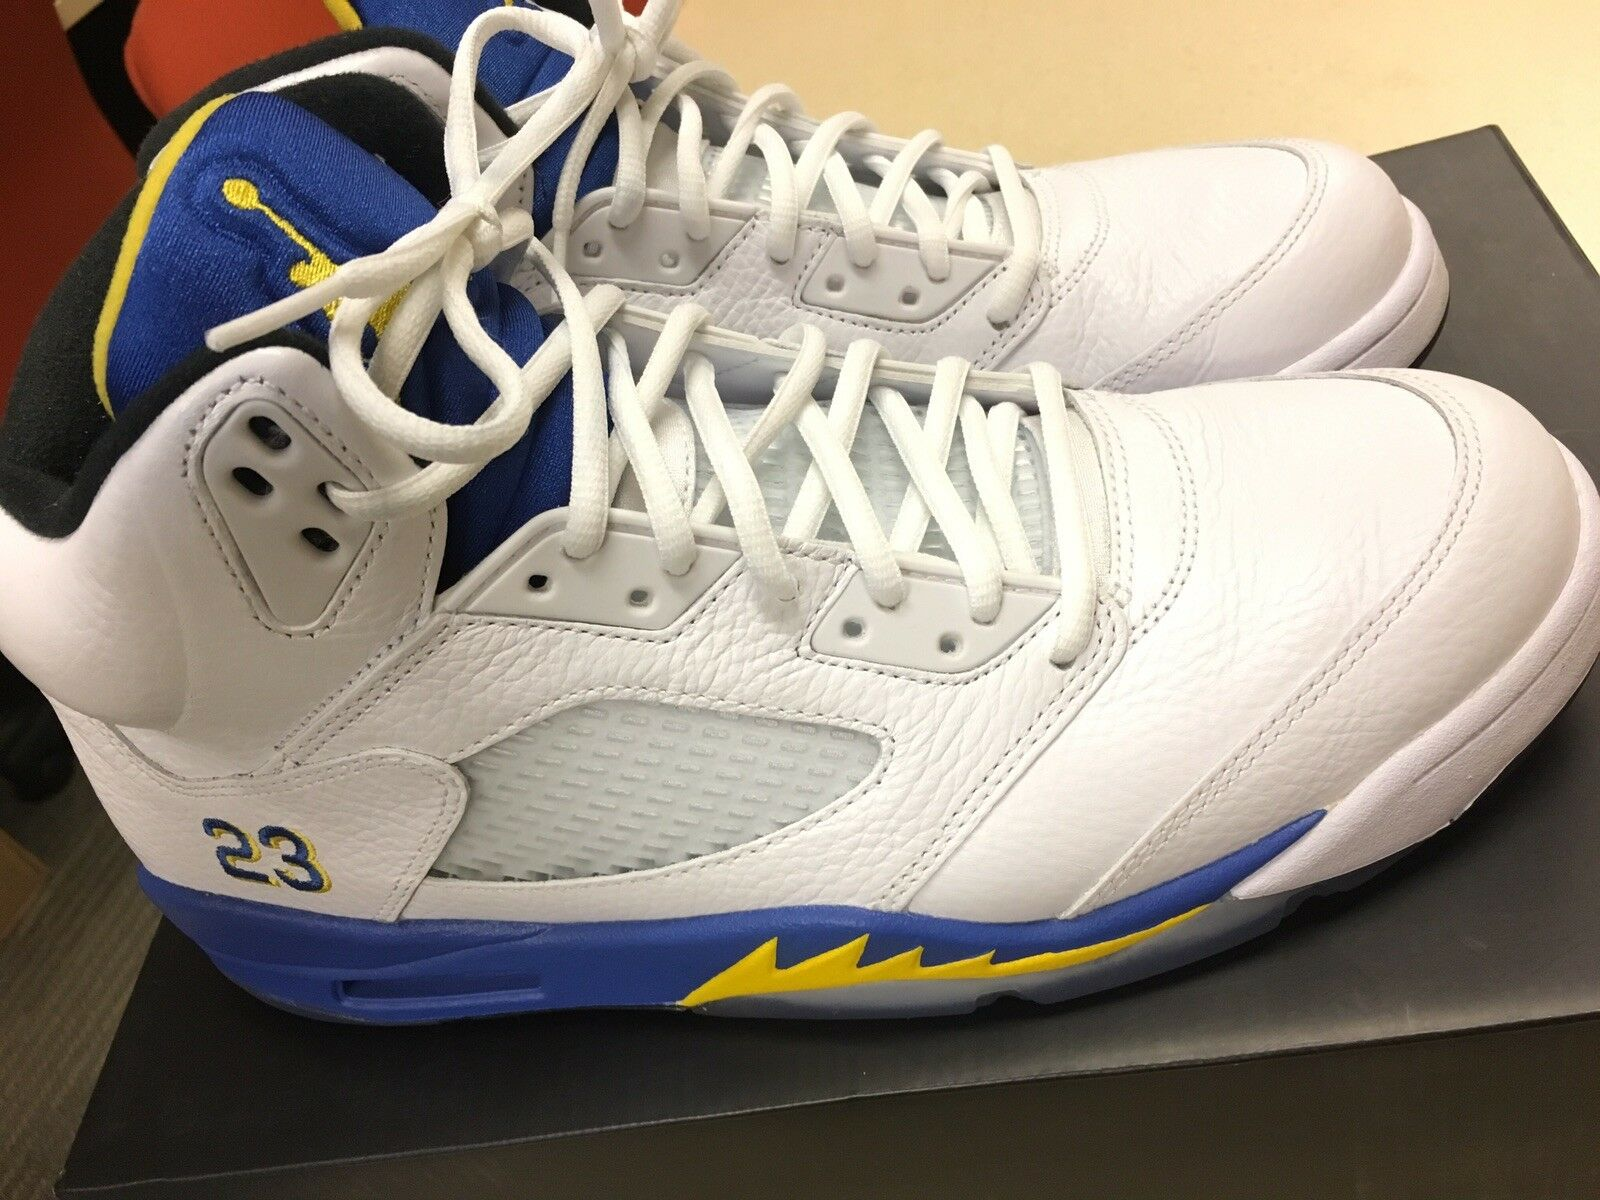 NIKE AIR JORDAN V 5 LANEY 2013 OG RETRO ORIGINAL Size 11 DS Kept Icy  Must See